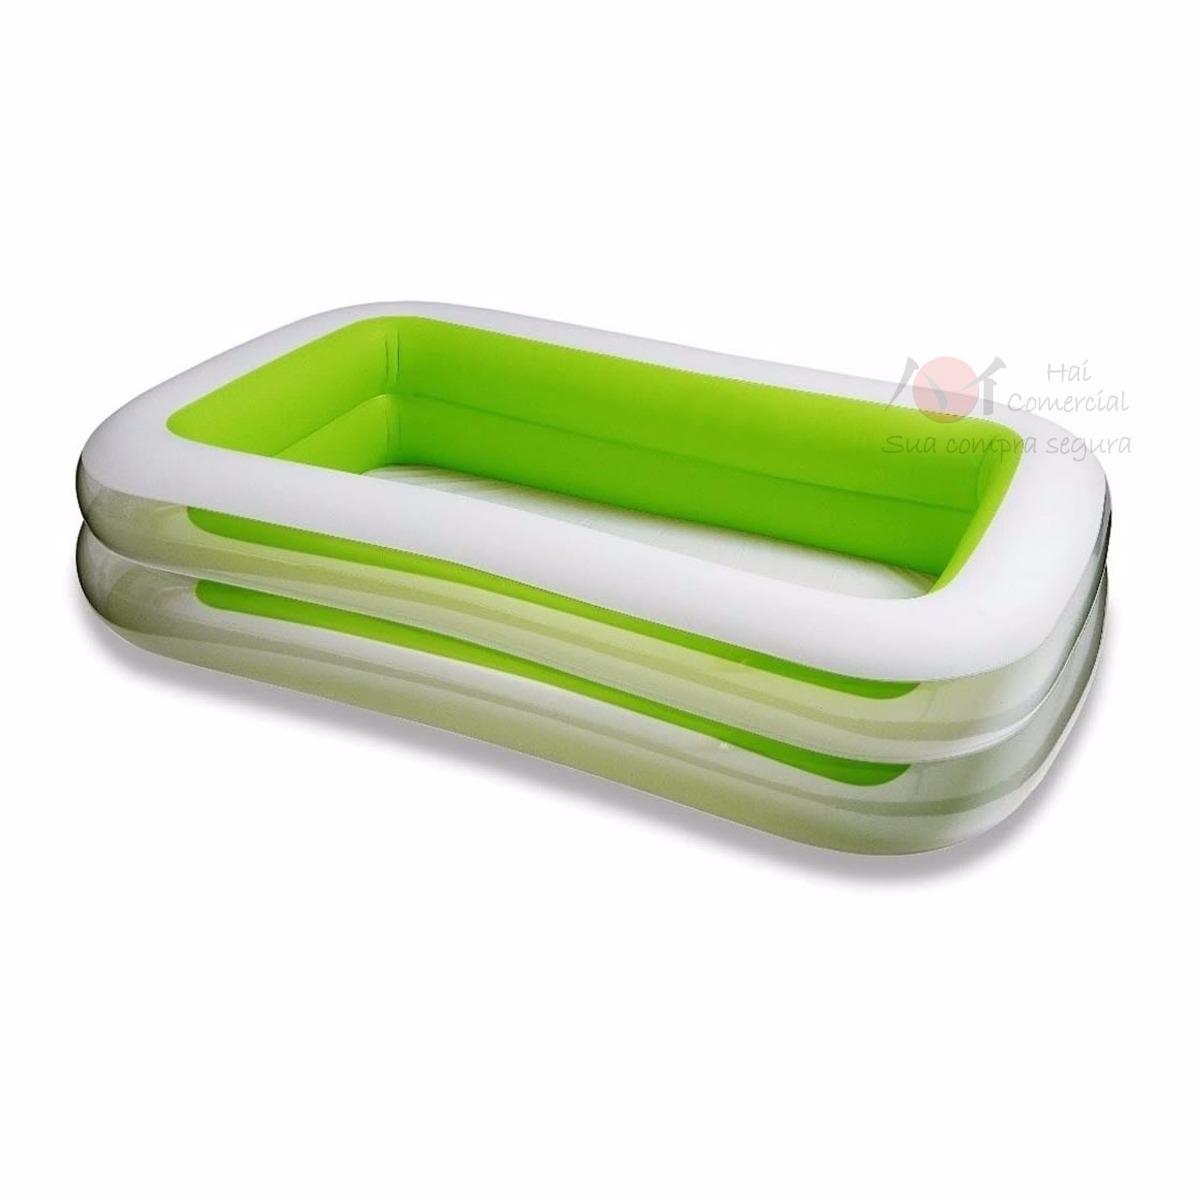 Piscina De Plastico 12000 Litros Intex Piscina Inflável Retangular Familiar Intex 749 Lts 43 Bomba